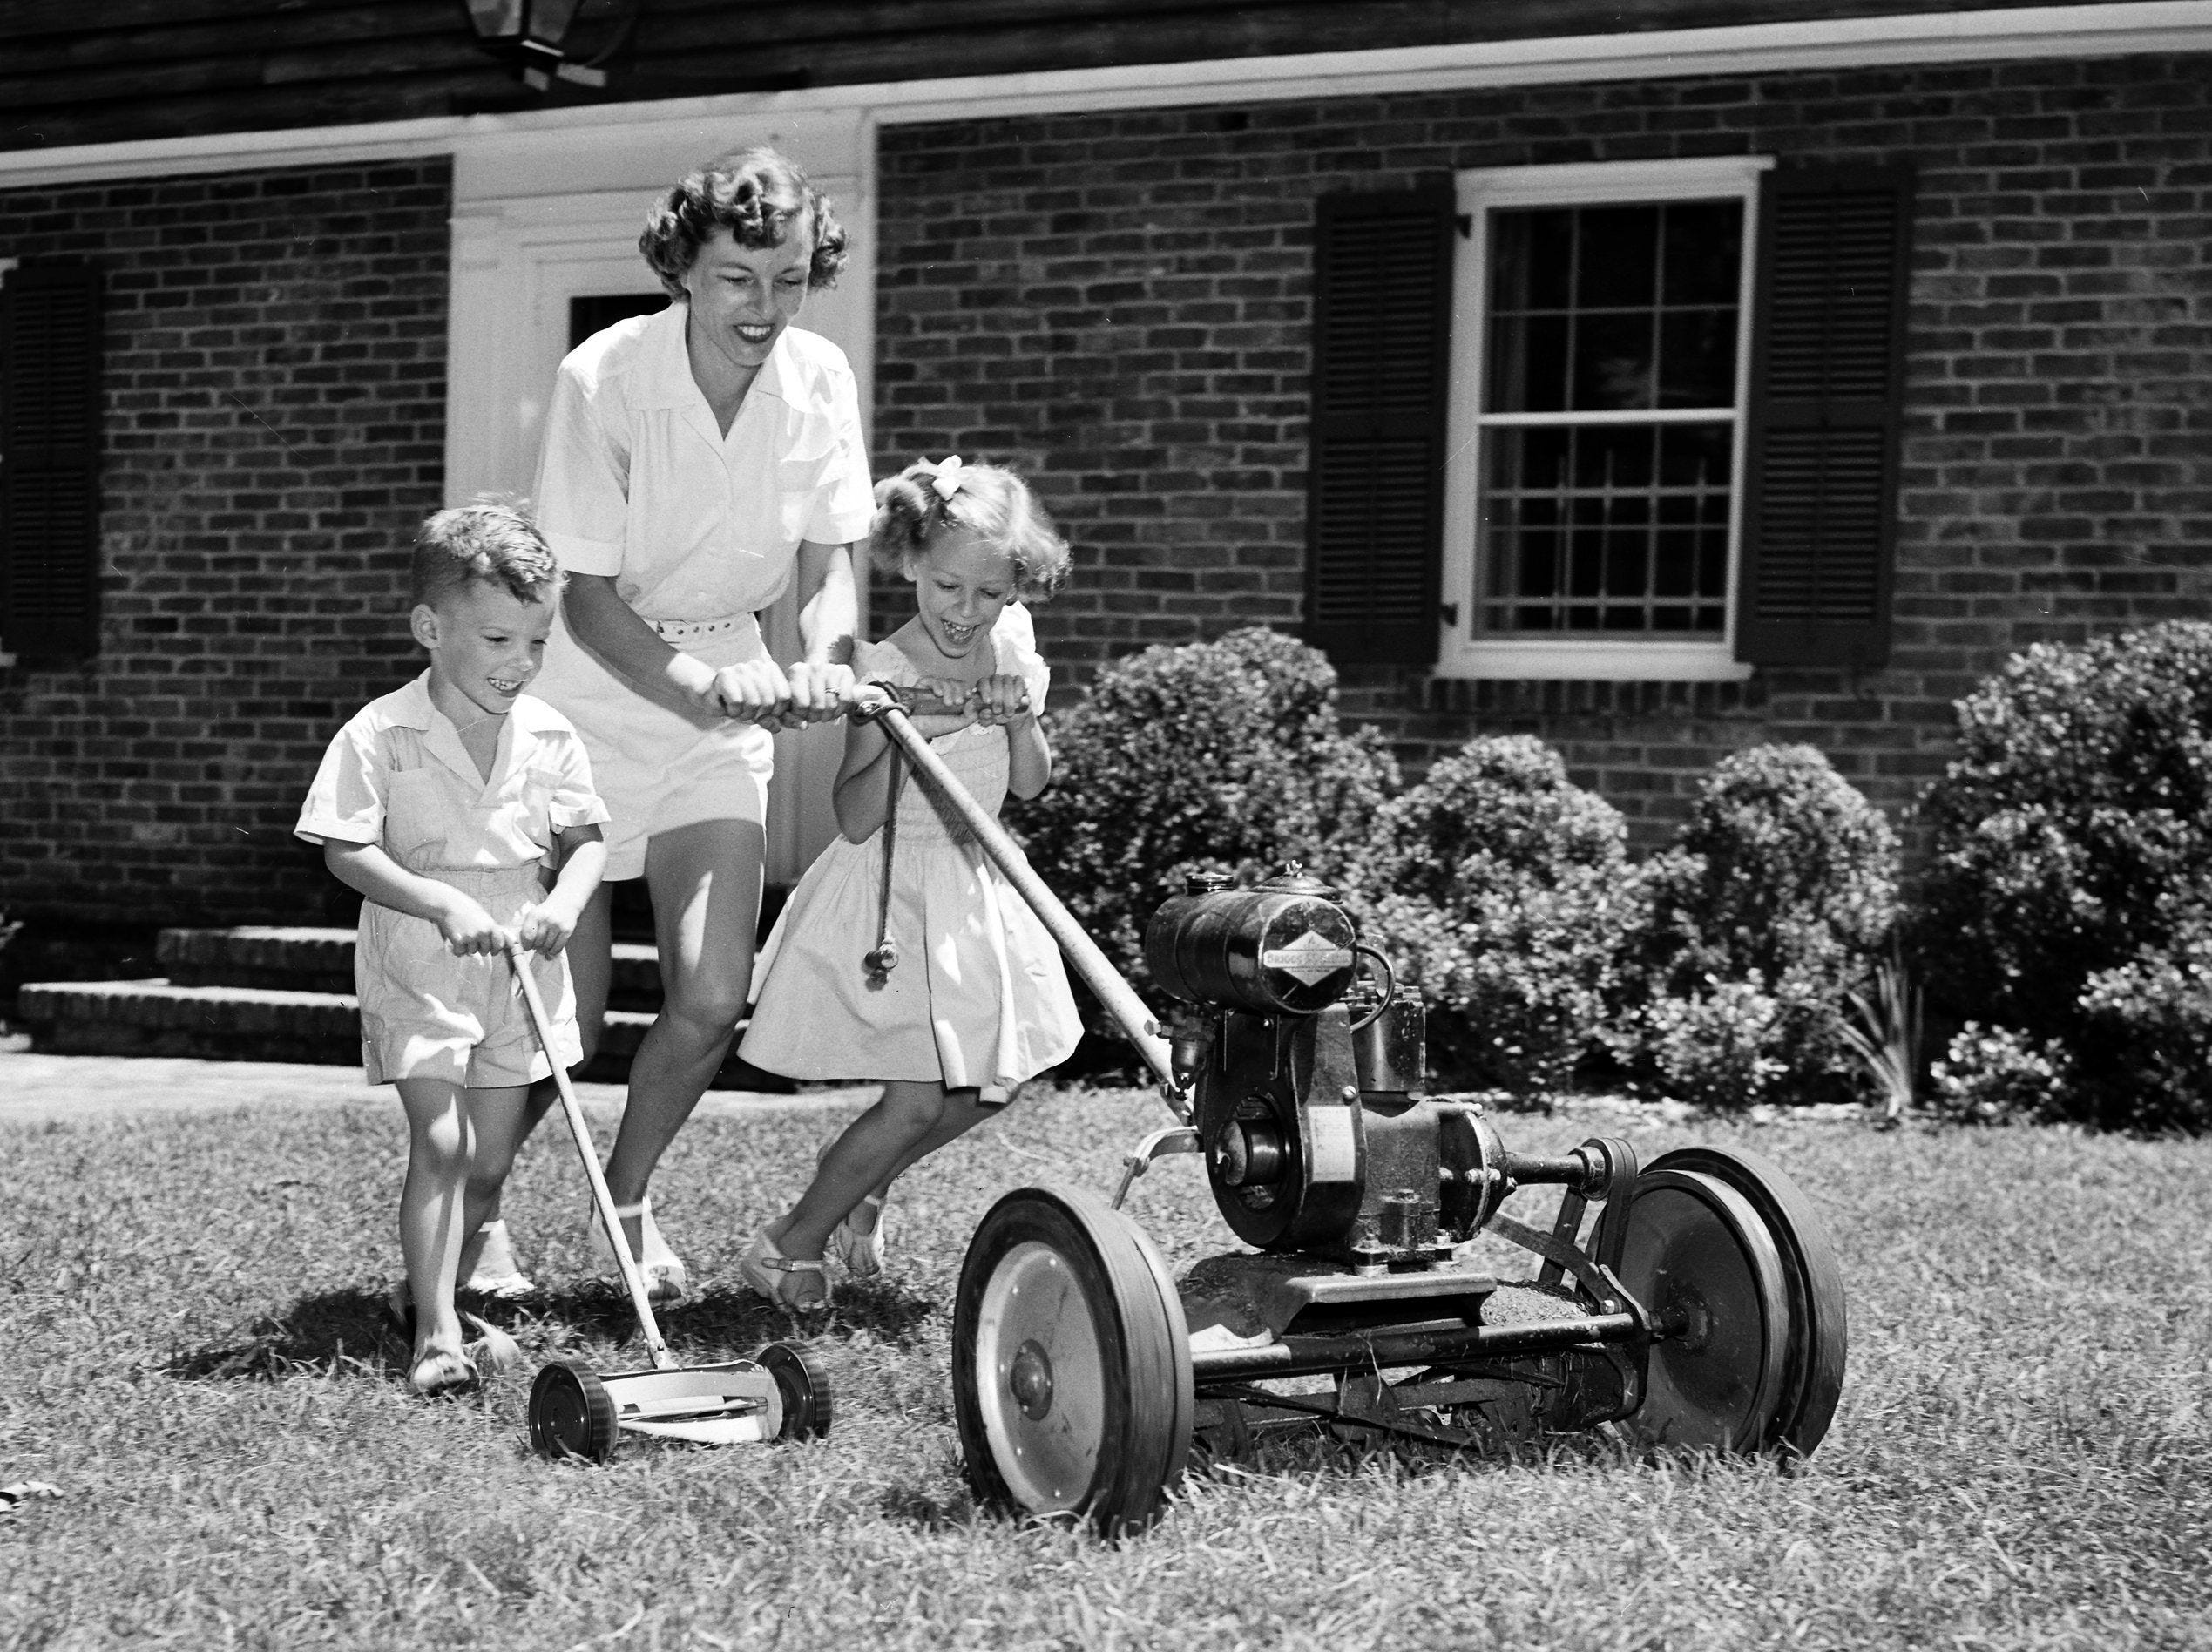 Mowing the lawn can be fun ? especially with a high-powered mower and two eager young assistants. Showing how a trio can accomplish the task quickly on 10 Aug 1951 is Mrs. Charles B. Dudley Jr., who guides the machine with her daughter, Mary, on the lawn of their home at 710 South Perkins. Cutting a path of his own is her son, Chip.